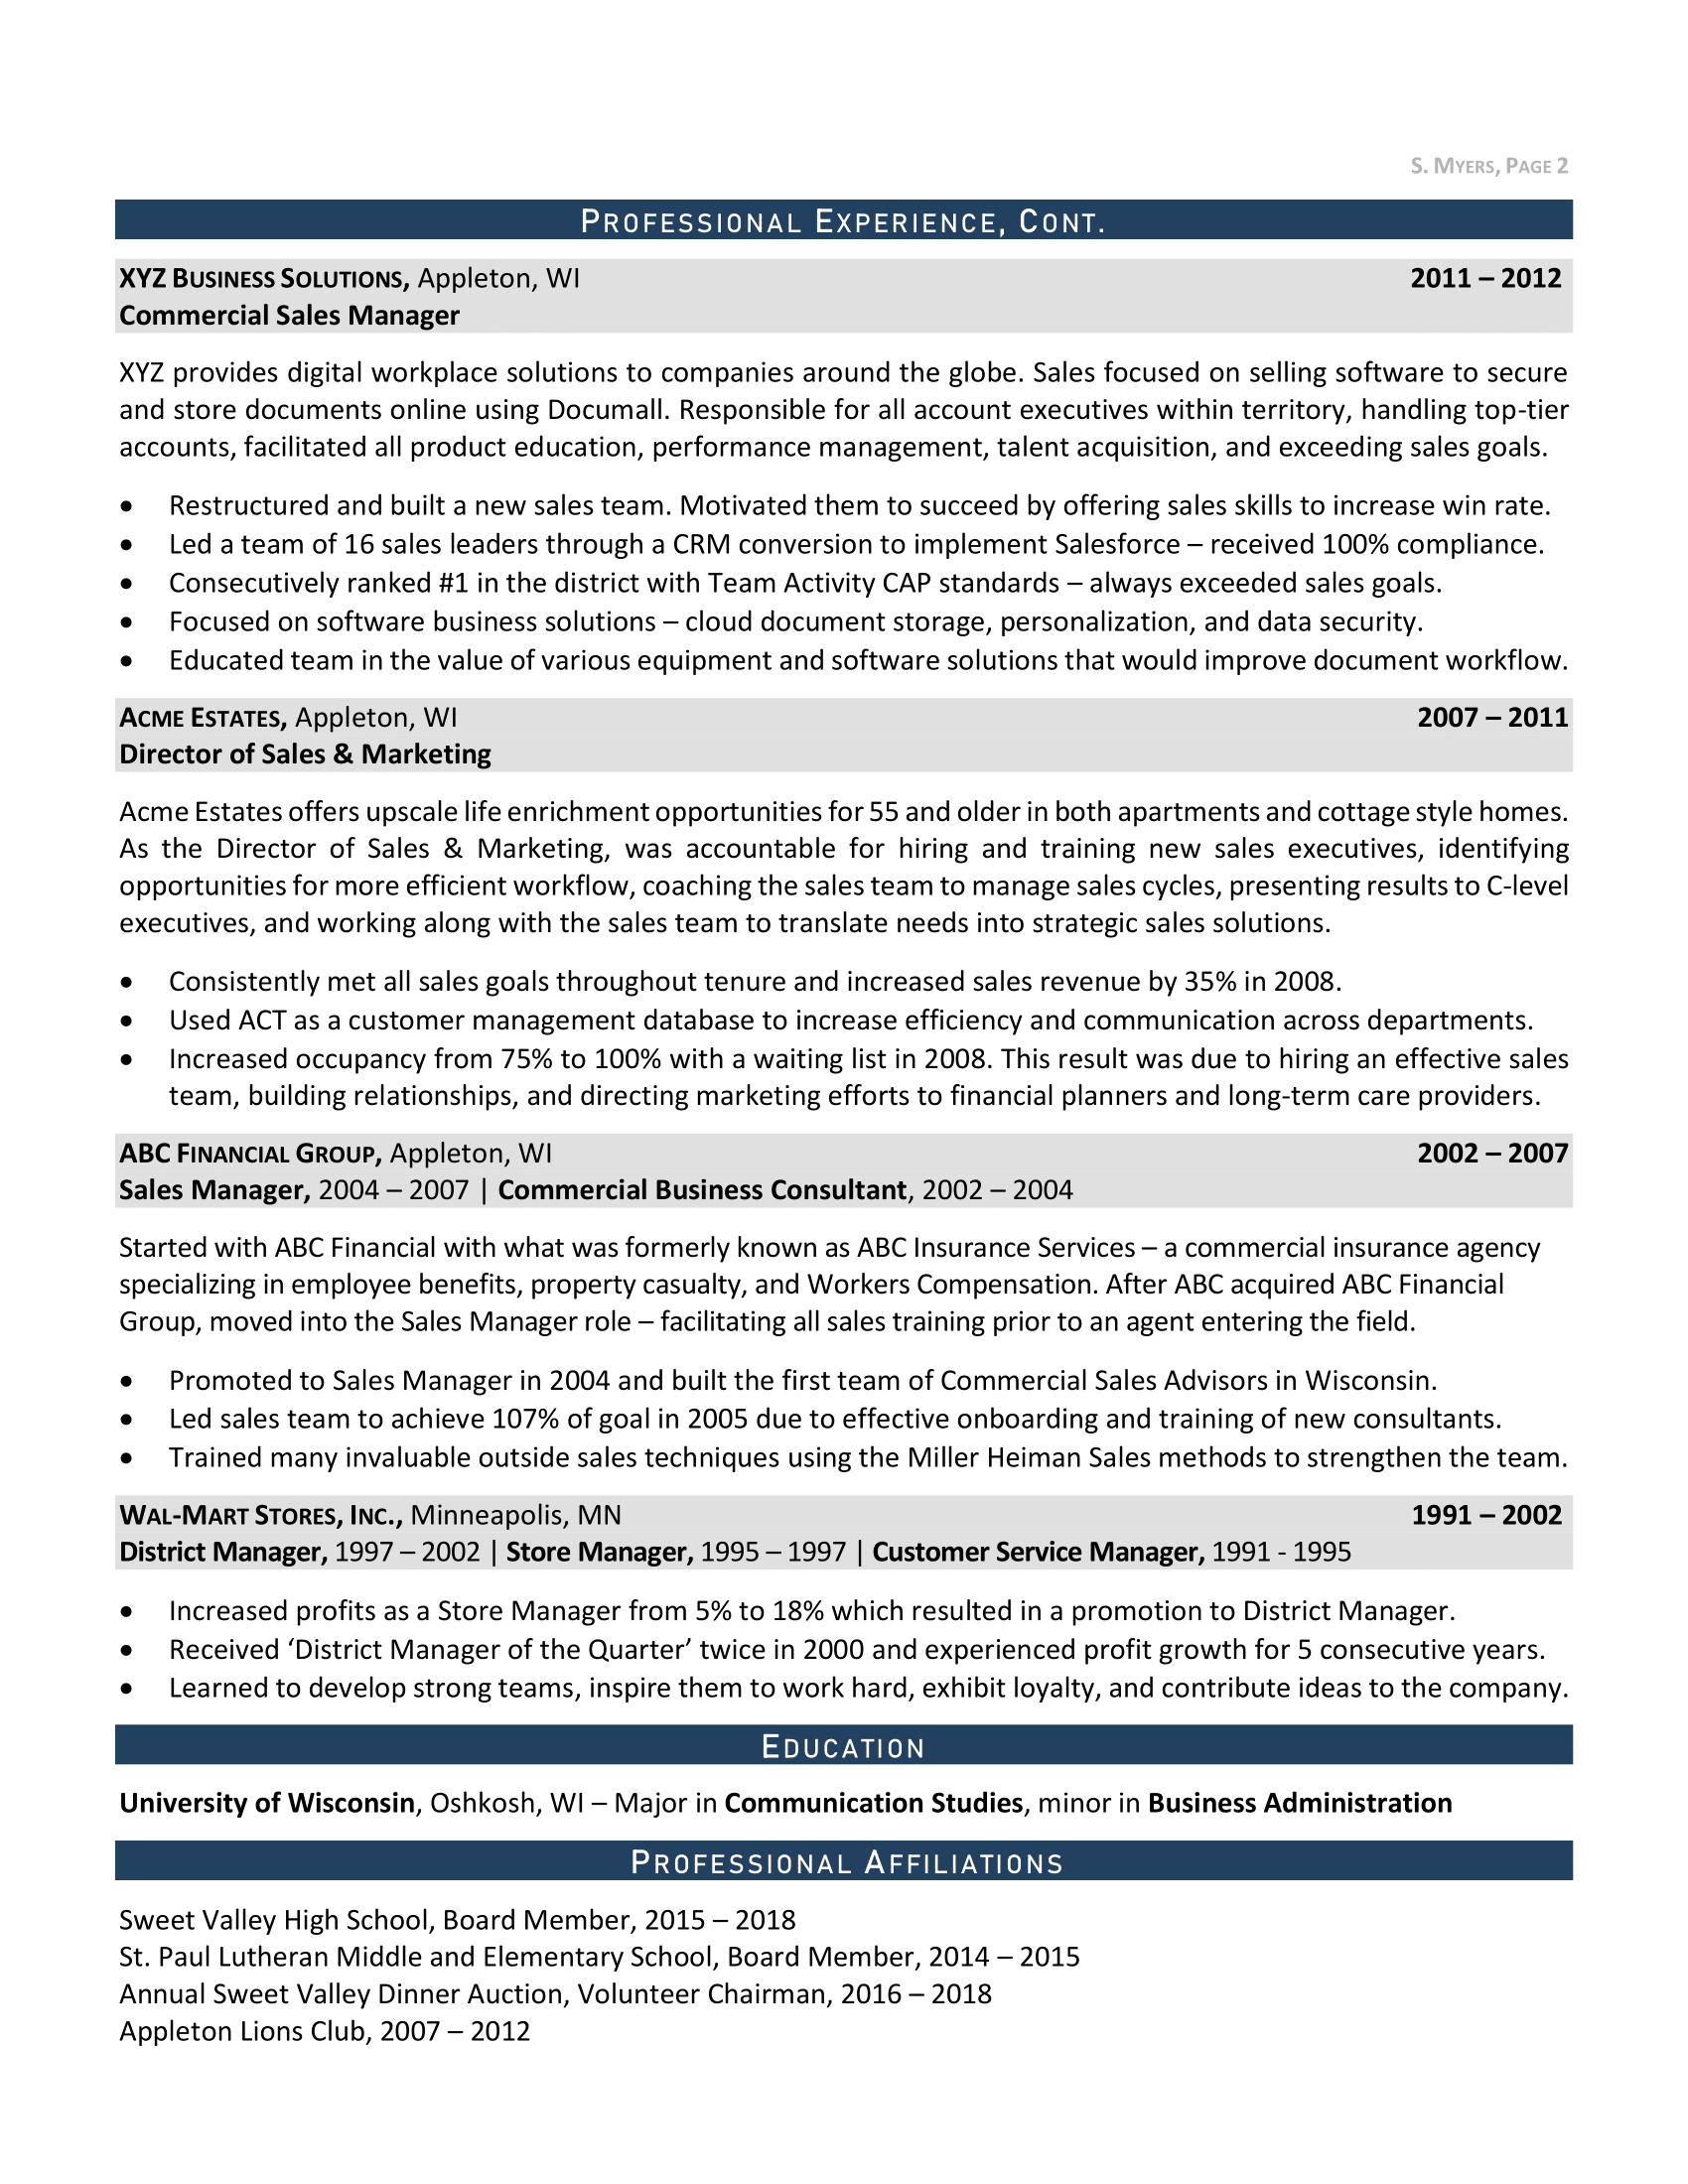 Enterprise Sales Resume, Page 2